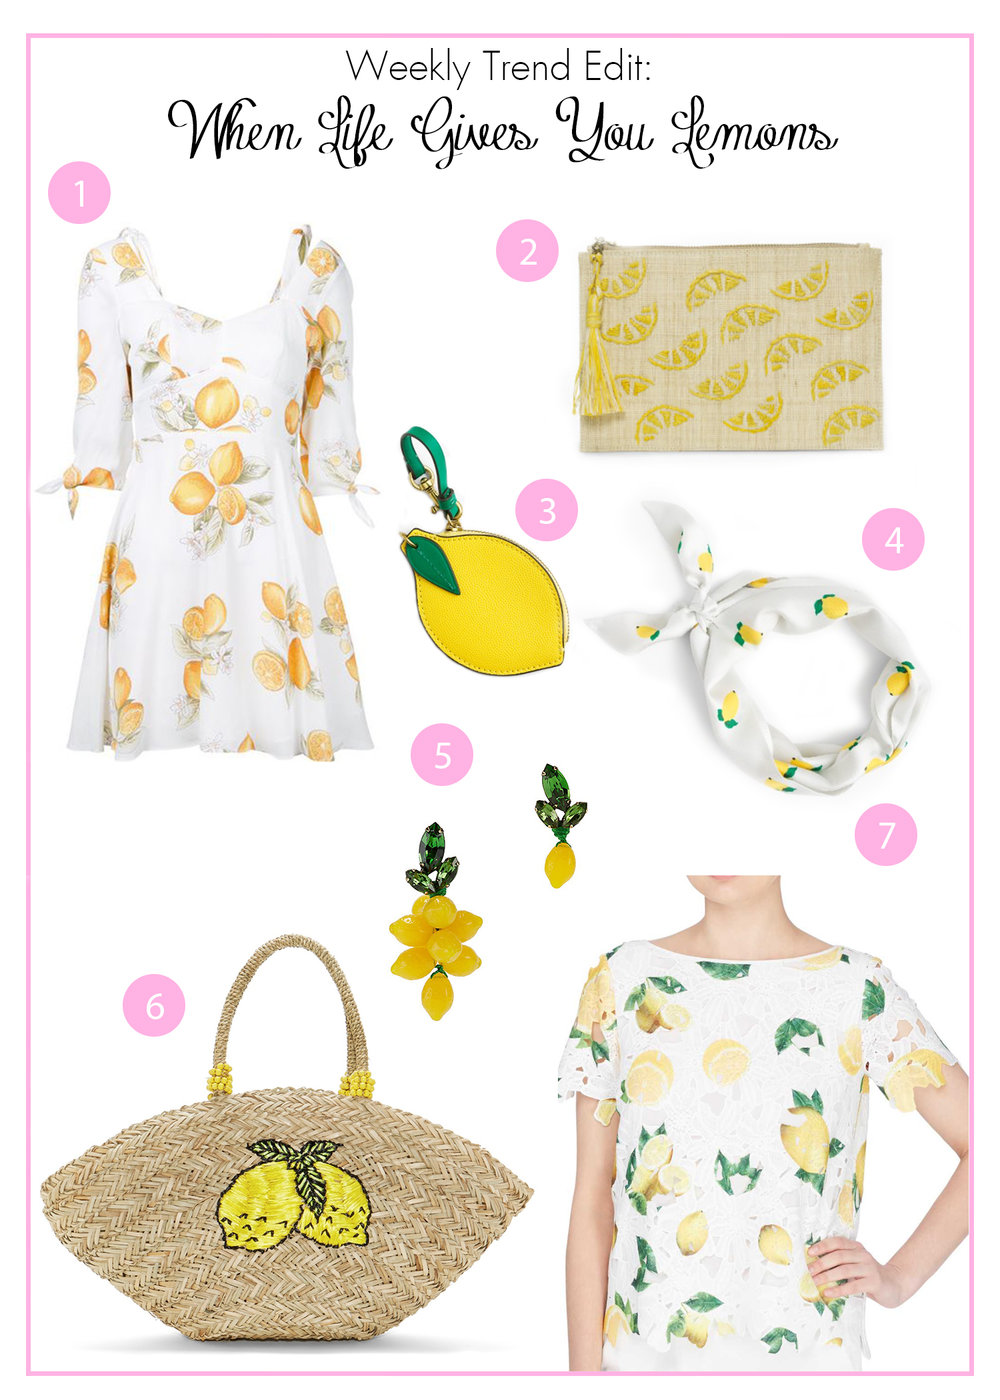 Weekly Trend Edit_Lemon Print Pattern.jpg